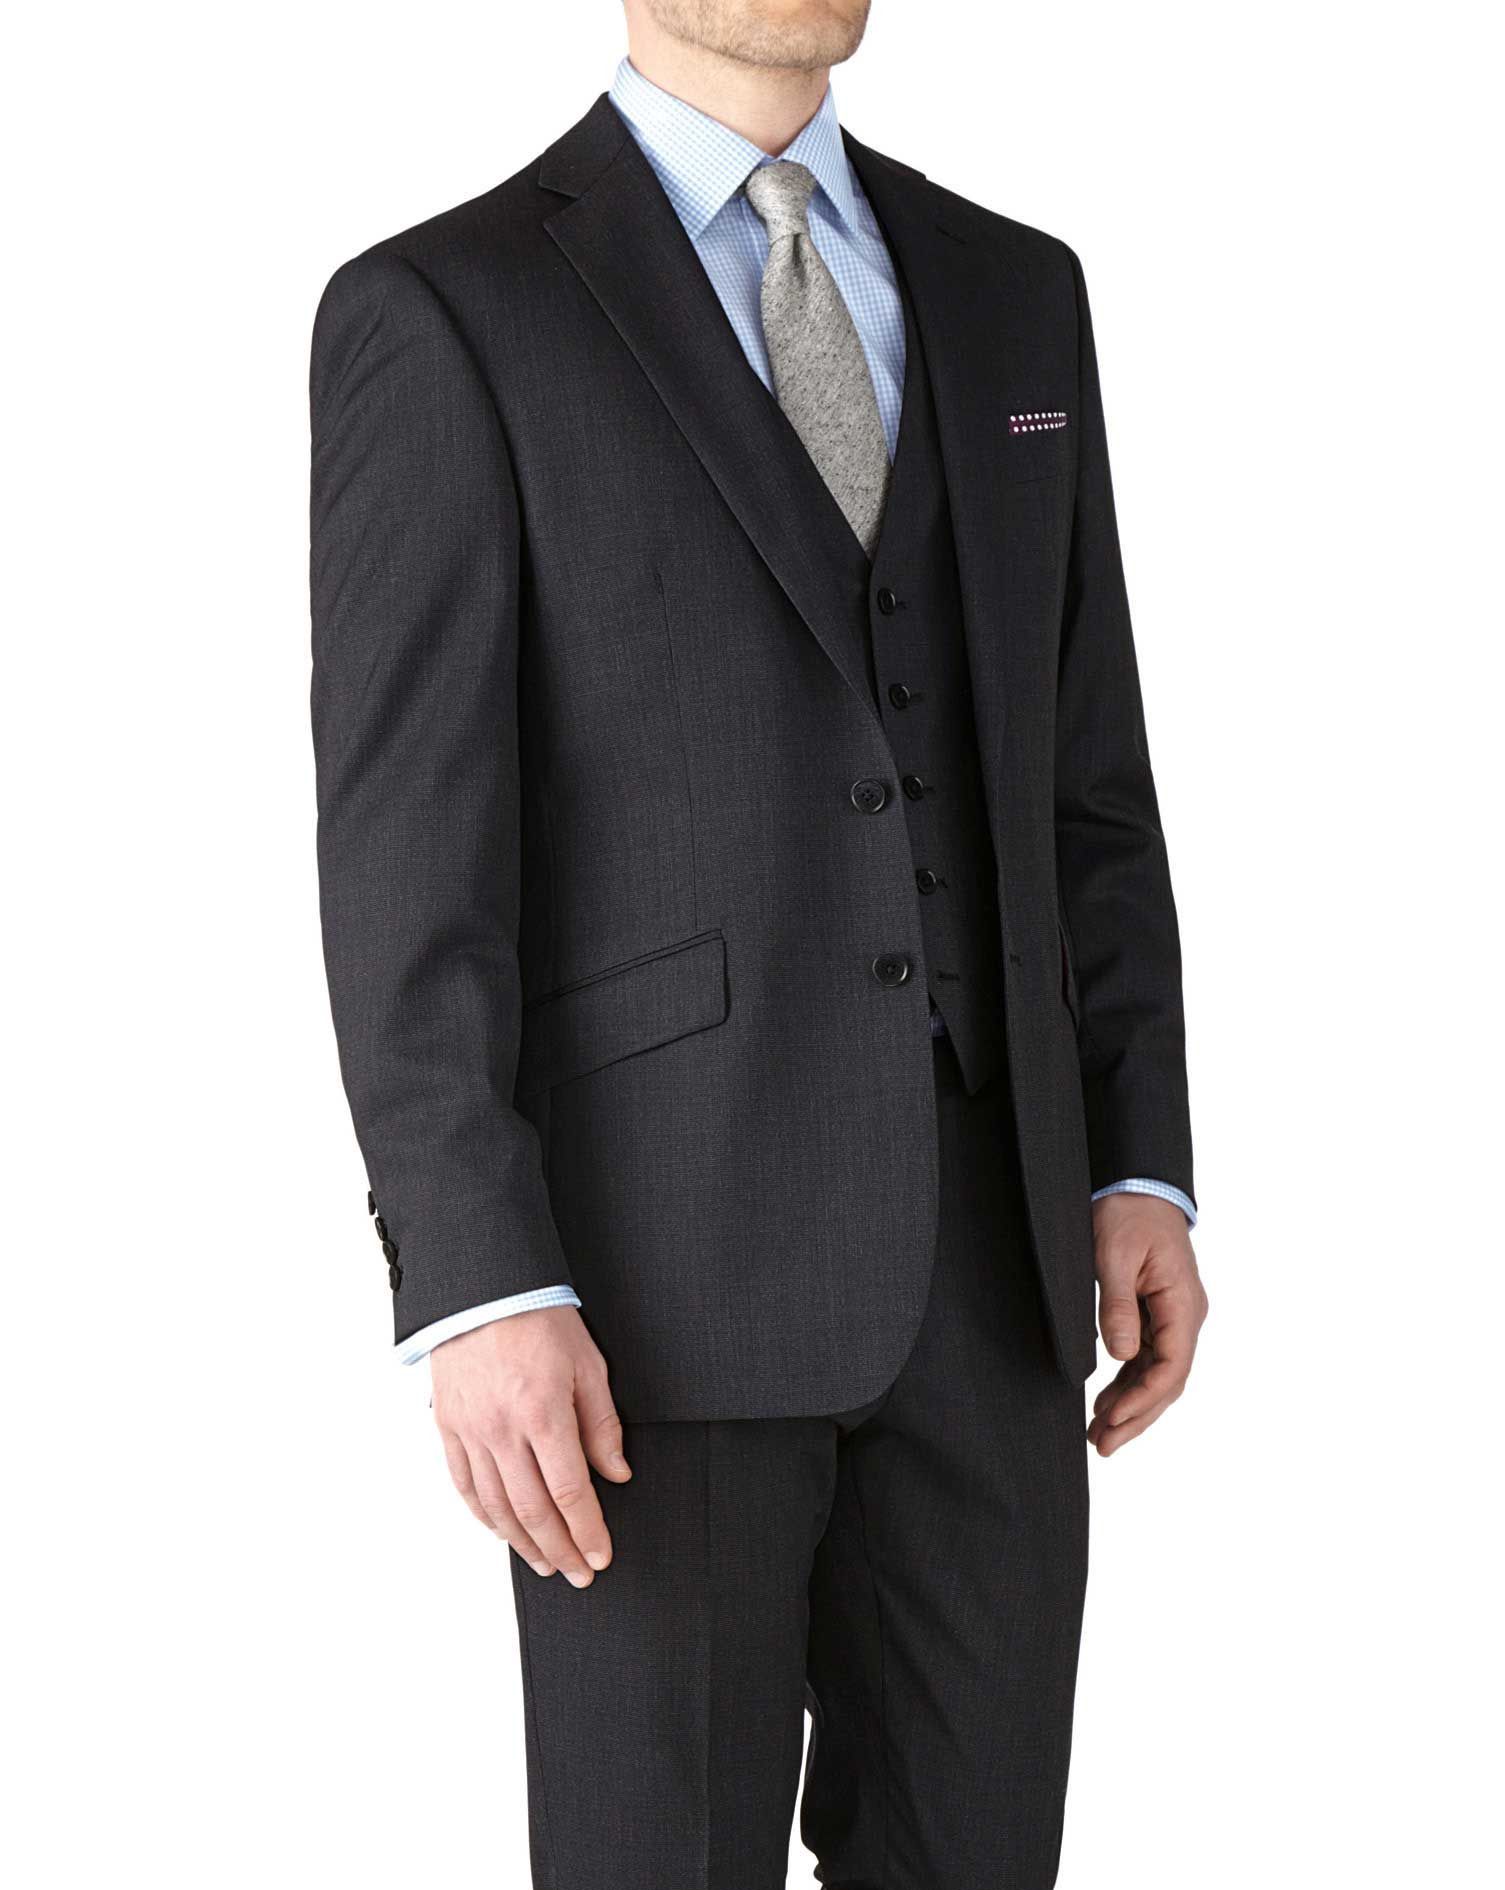 Charcoal Classic Fit End-On-End Business Suit Wool Jacket Size 36 Regular by Charles Tyrwhitt